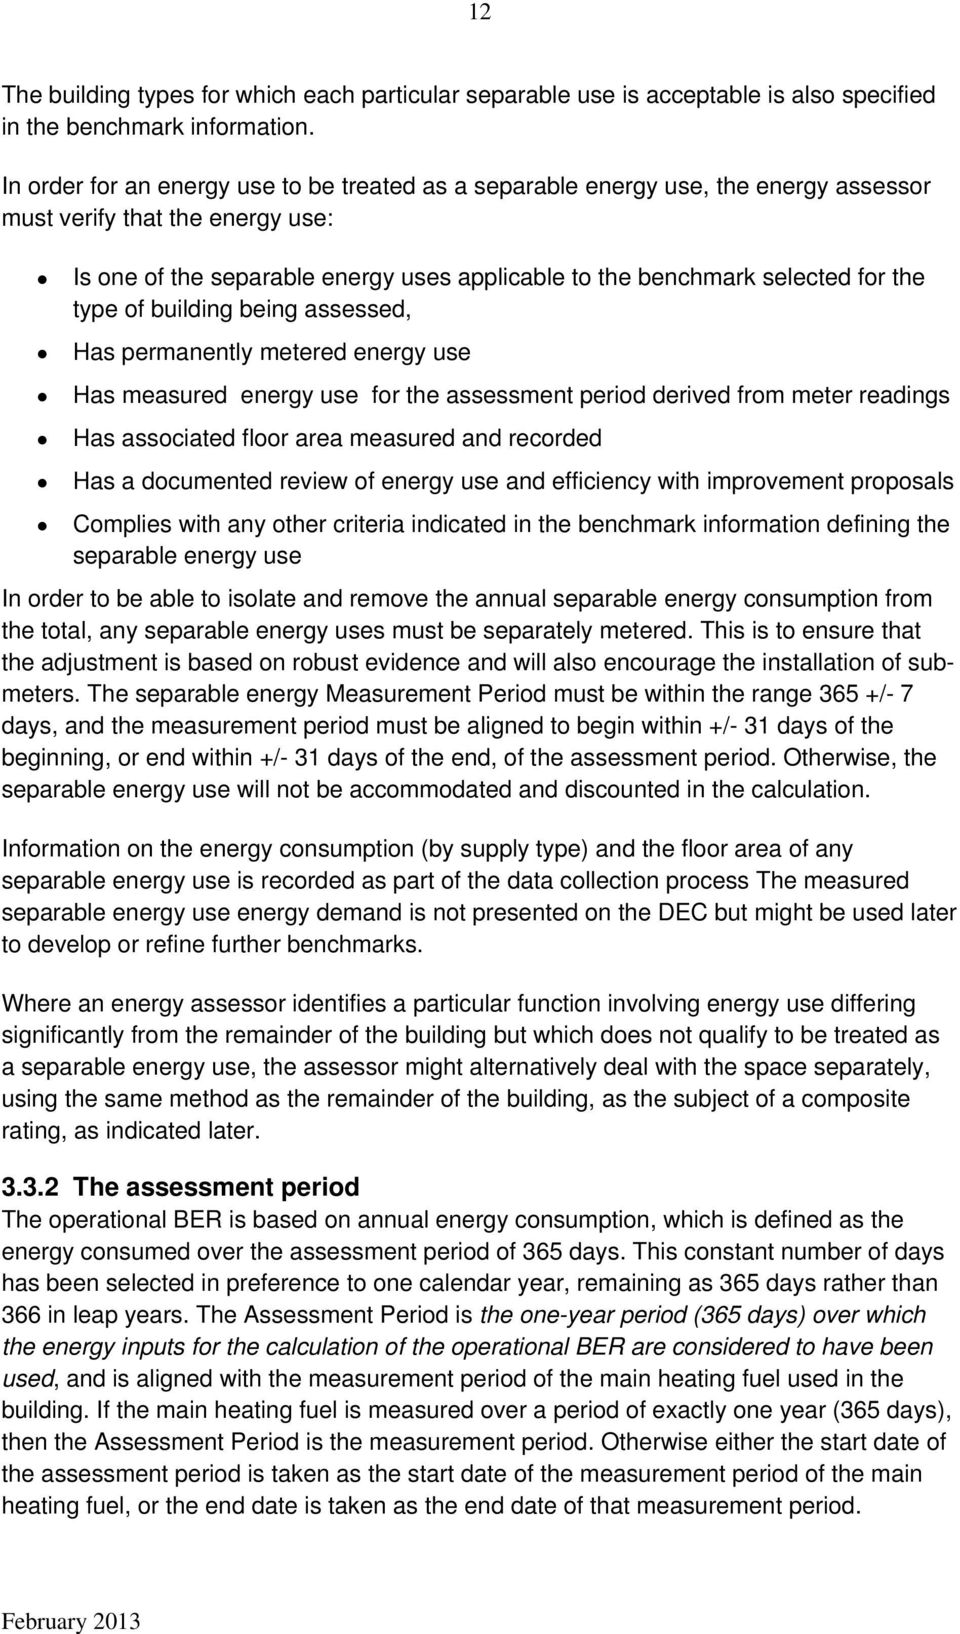 the type of building being assessed, Has permanently metered energy use Has measured energy use for the assessment period derived from meter readings Has associated floor area measured and recorded